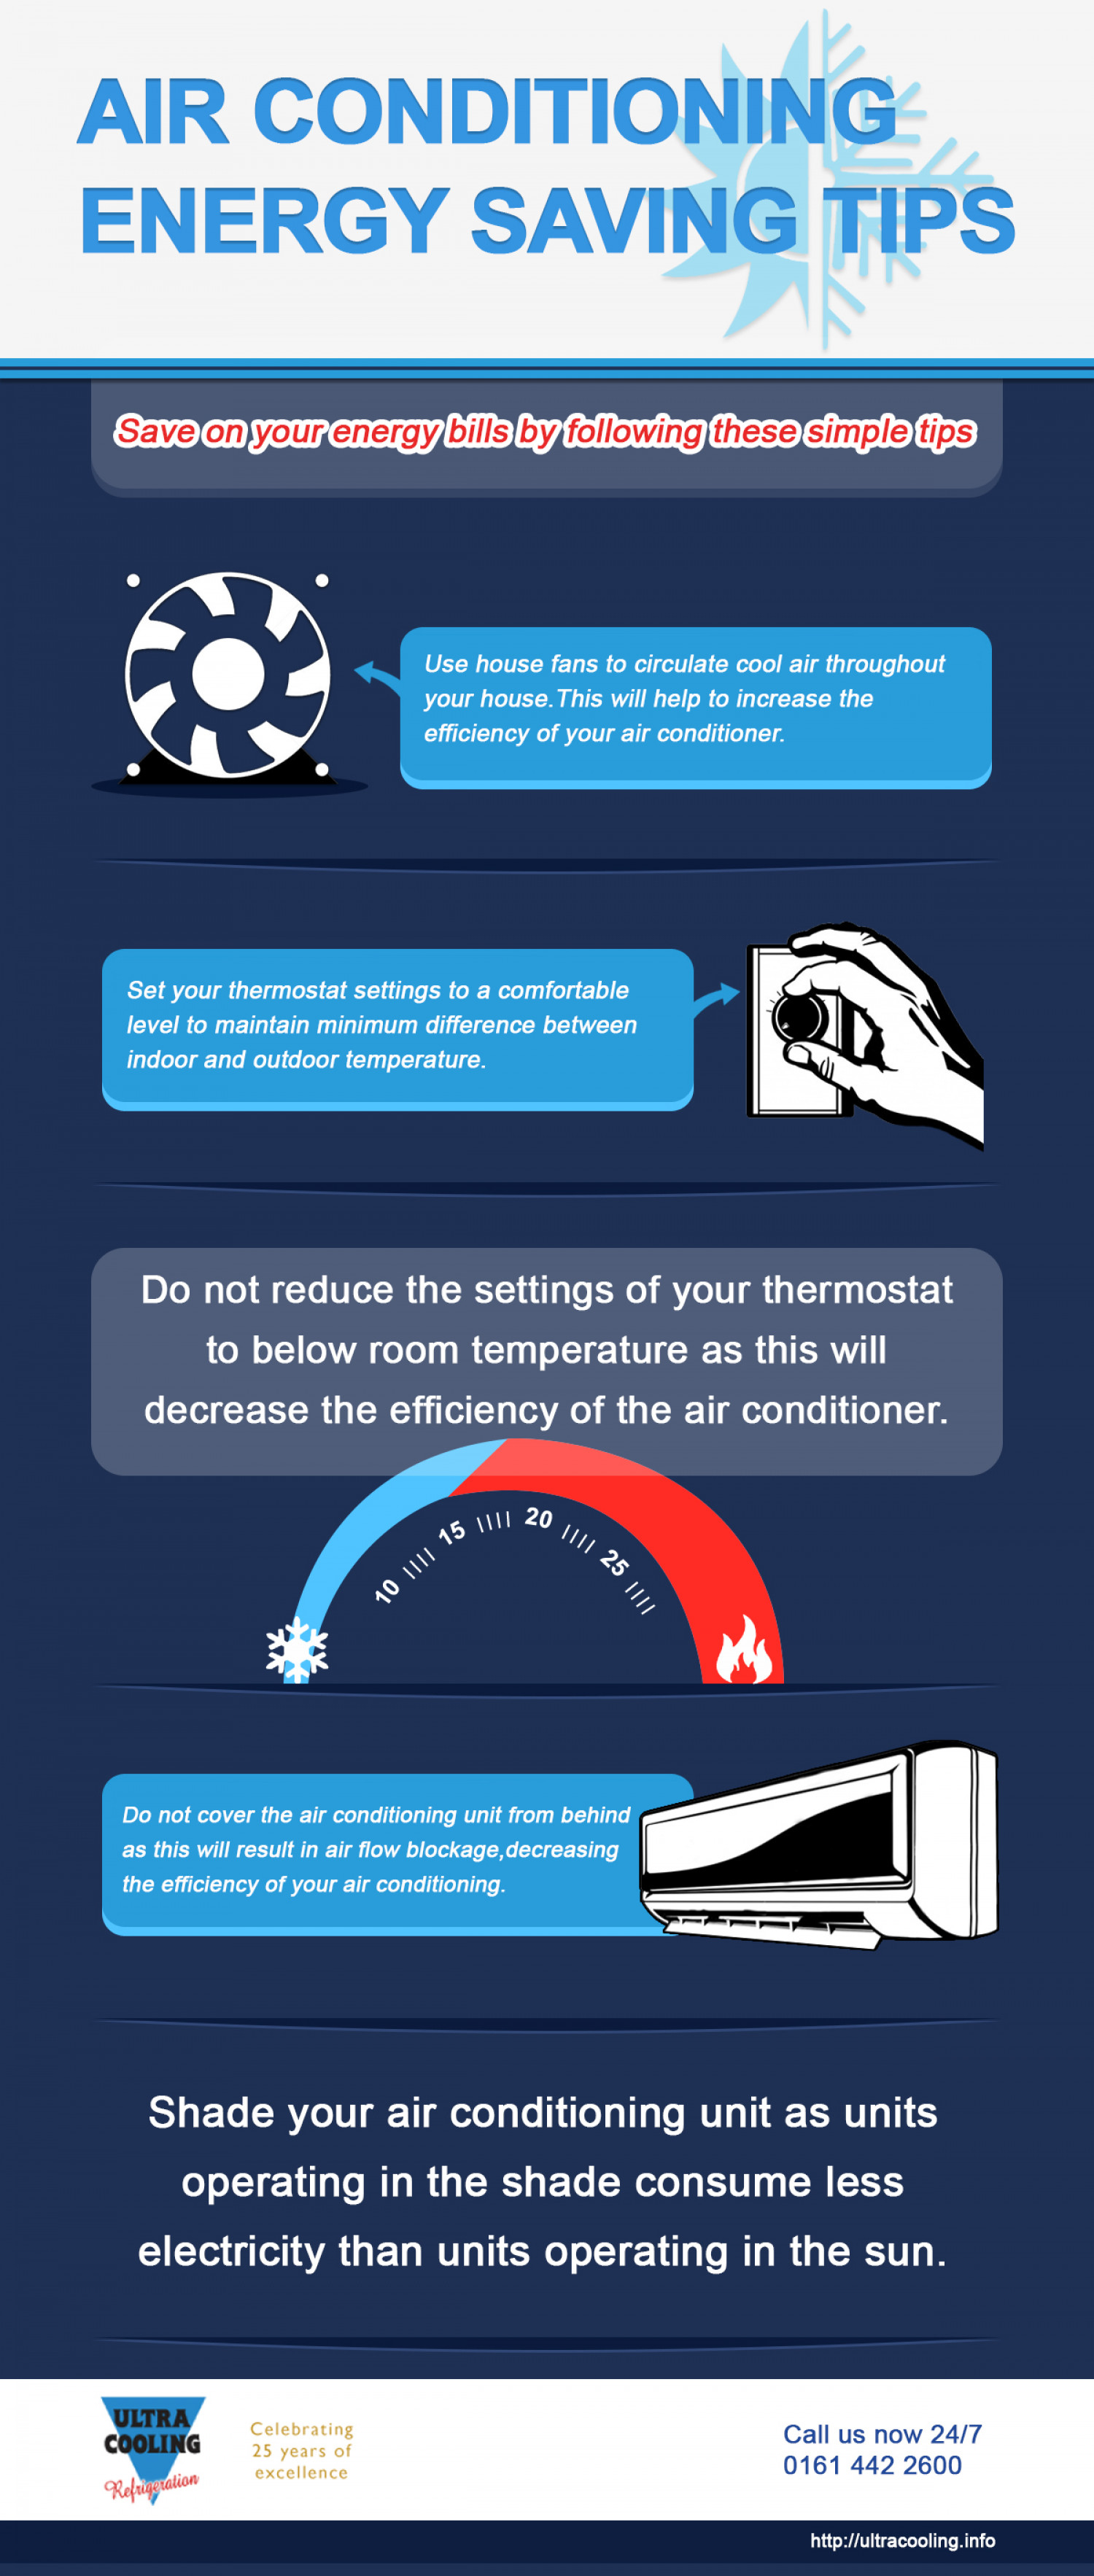 Air Conditioning Energy Saving Tips | Visual ly